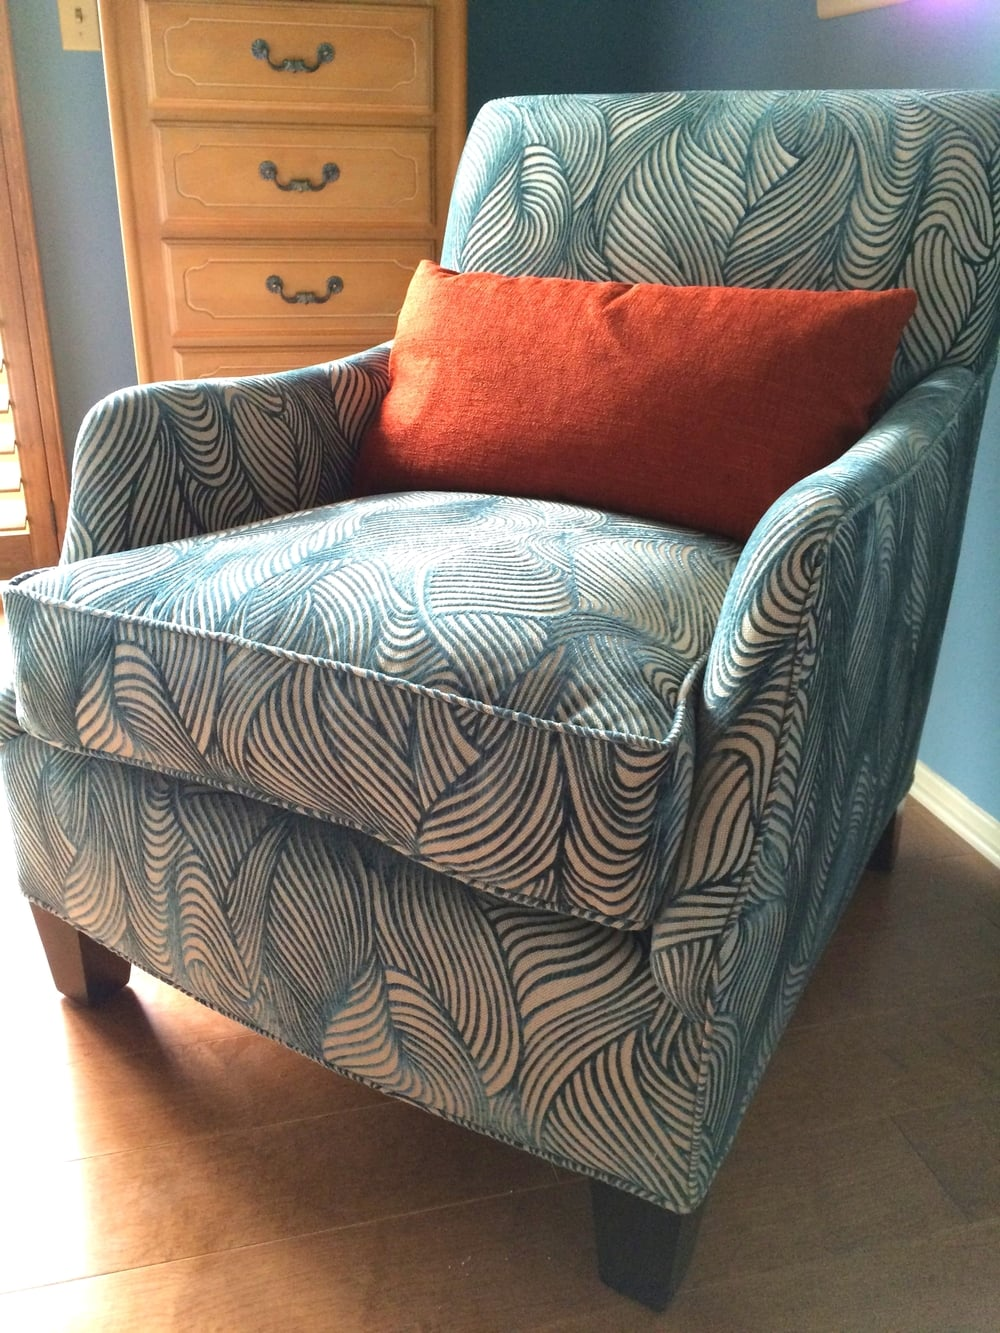 The perfection that is the armchair in the master bedroom at the Channel Islands Marina house.